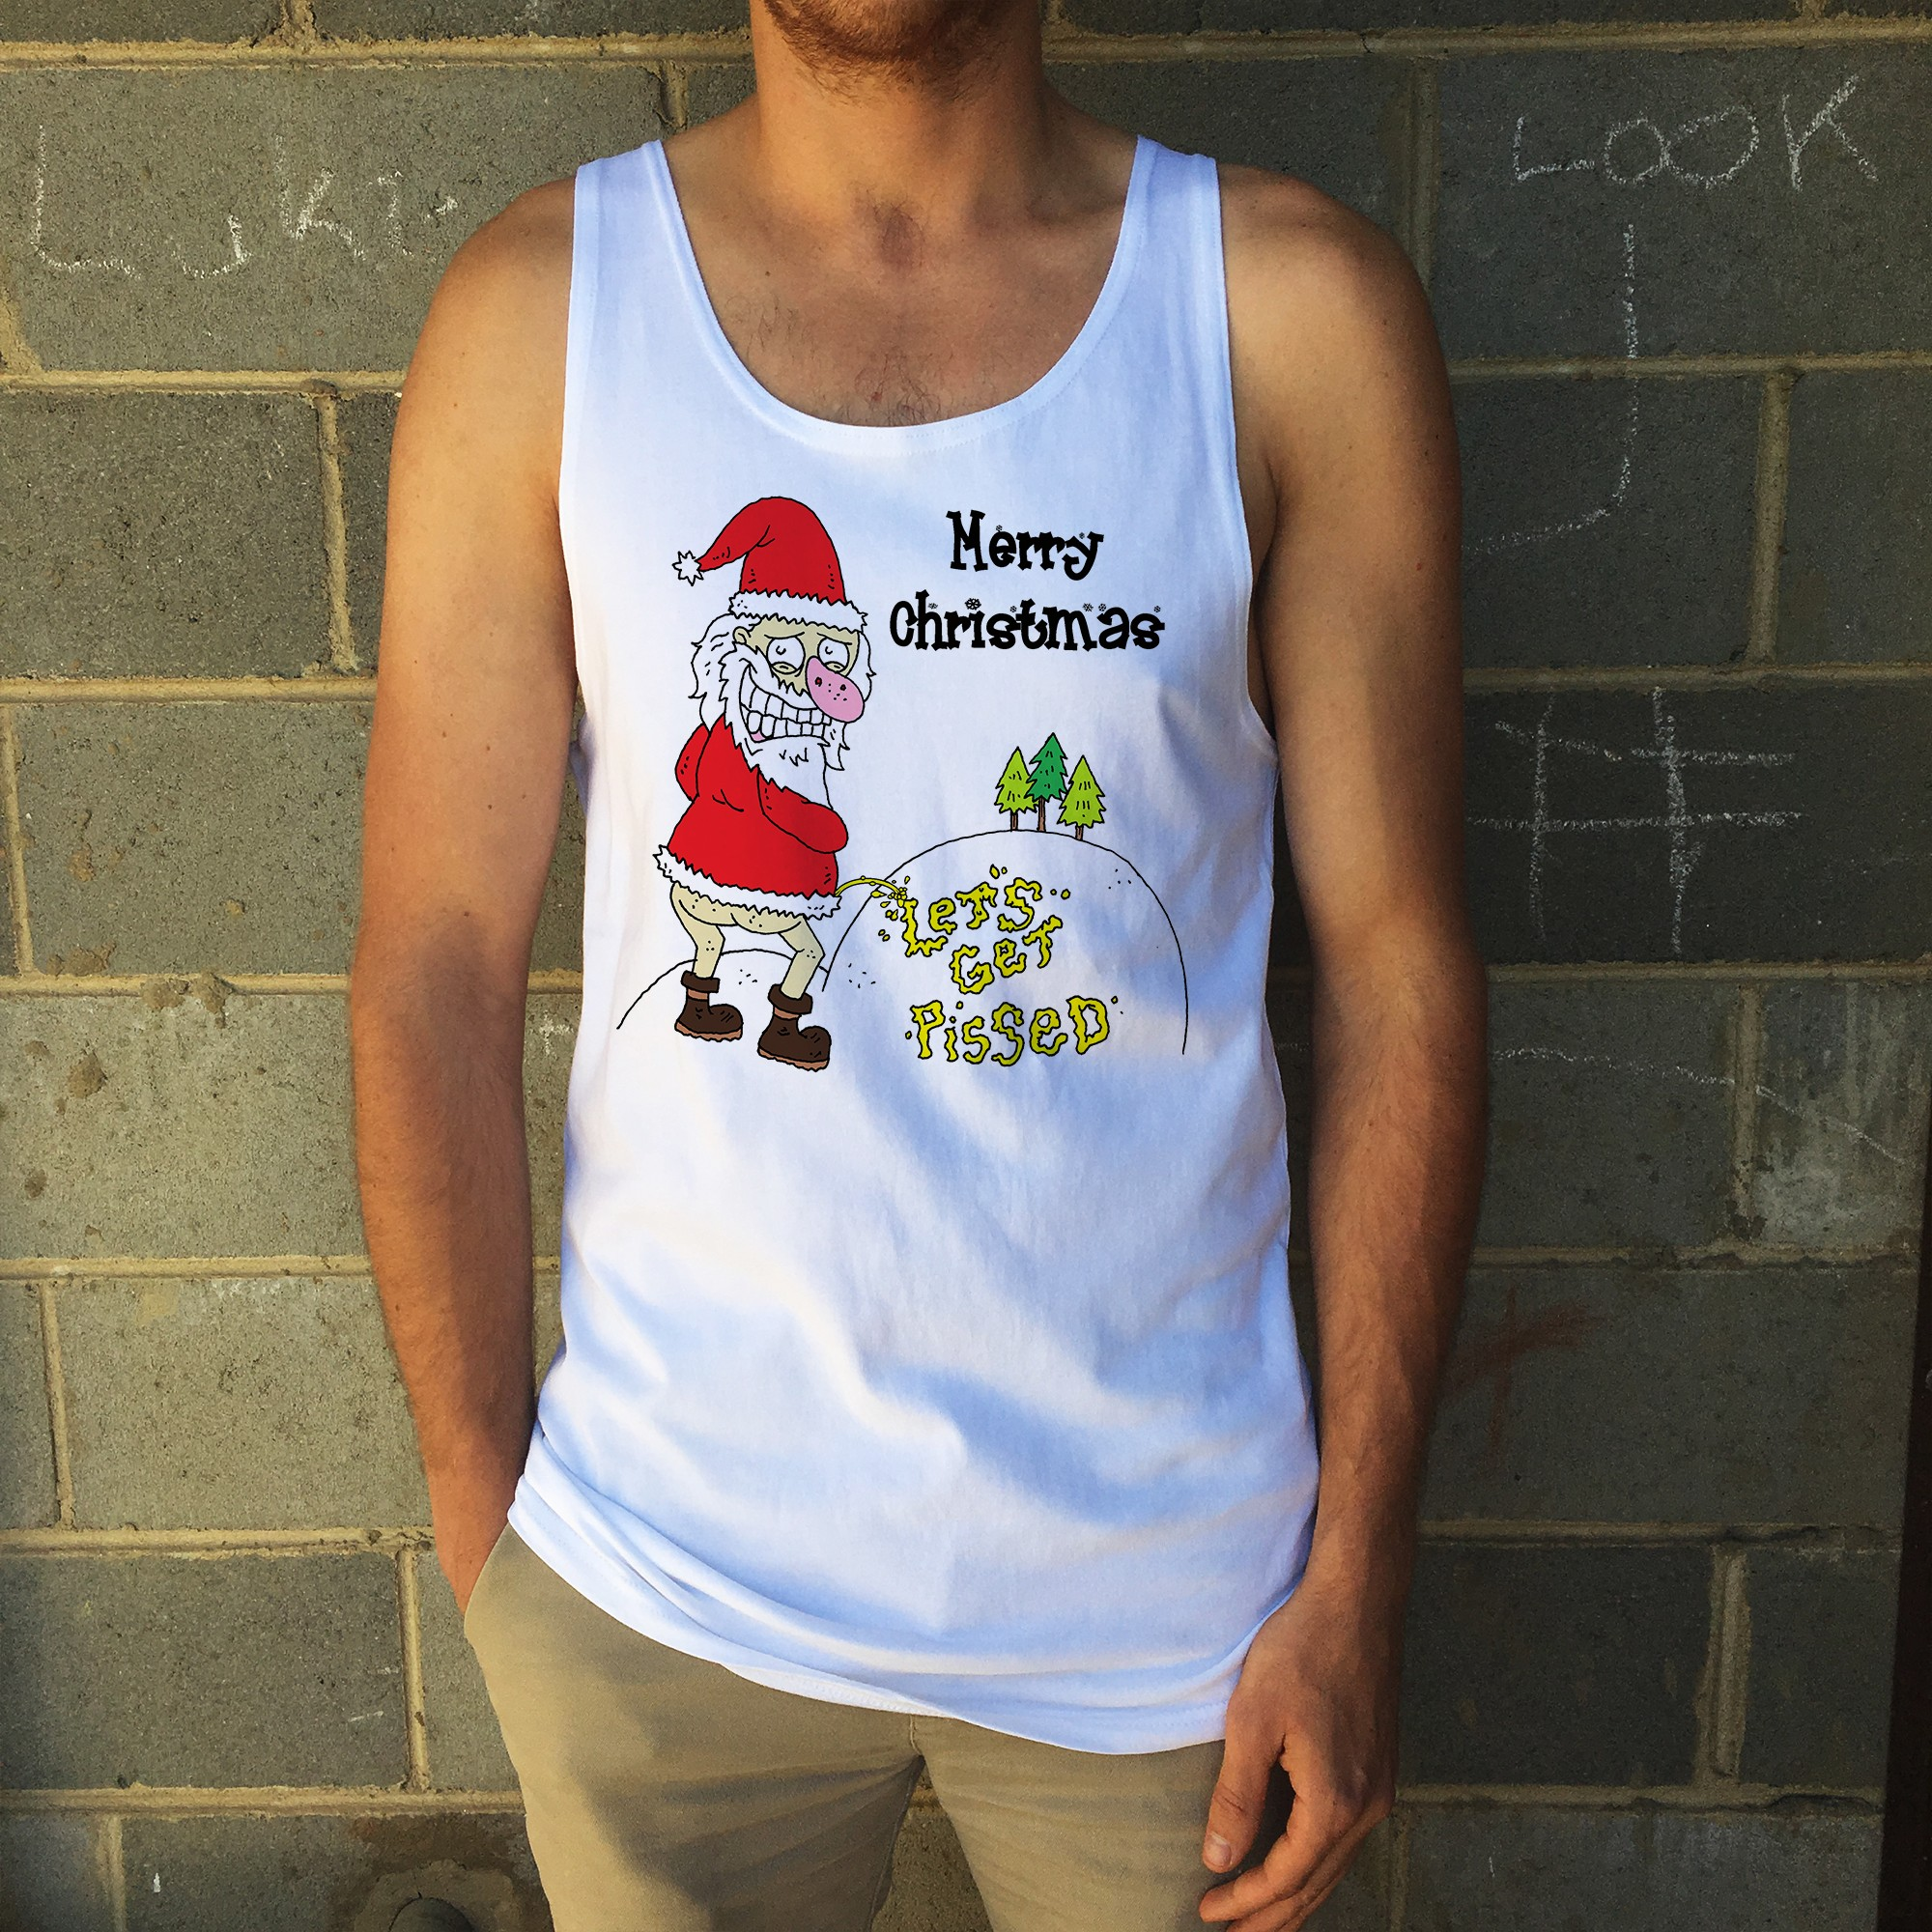 LETS GET PISSED XMAS WHITE SINGLET